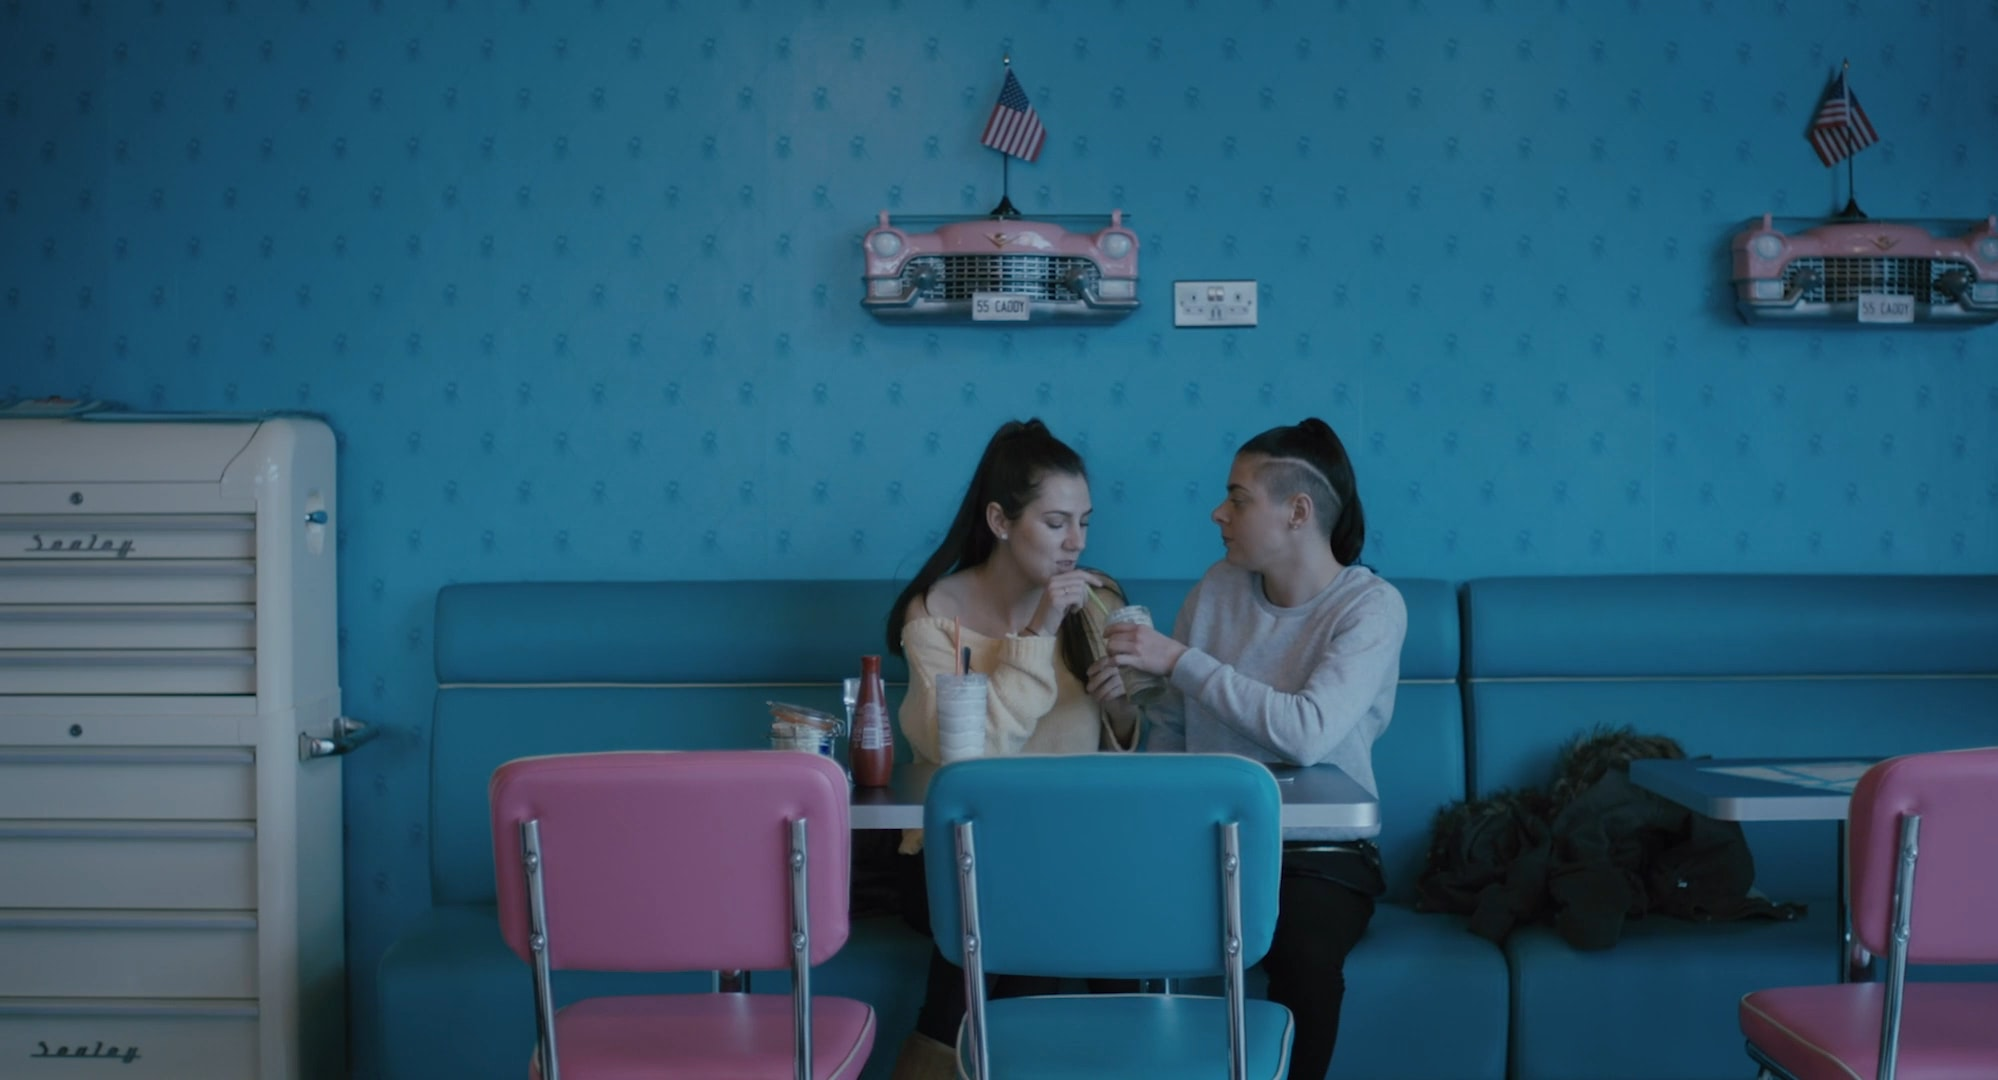 Two young women in an American diner drinking a milk shake and looking at each other.